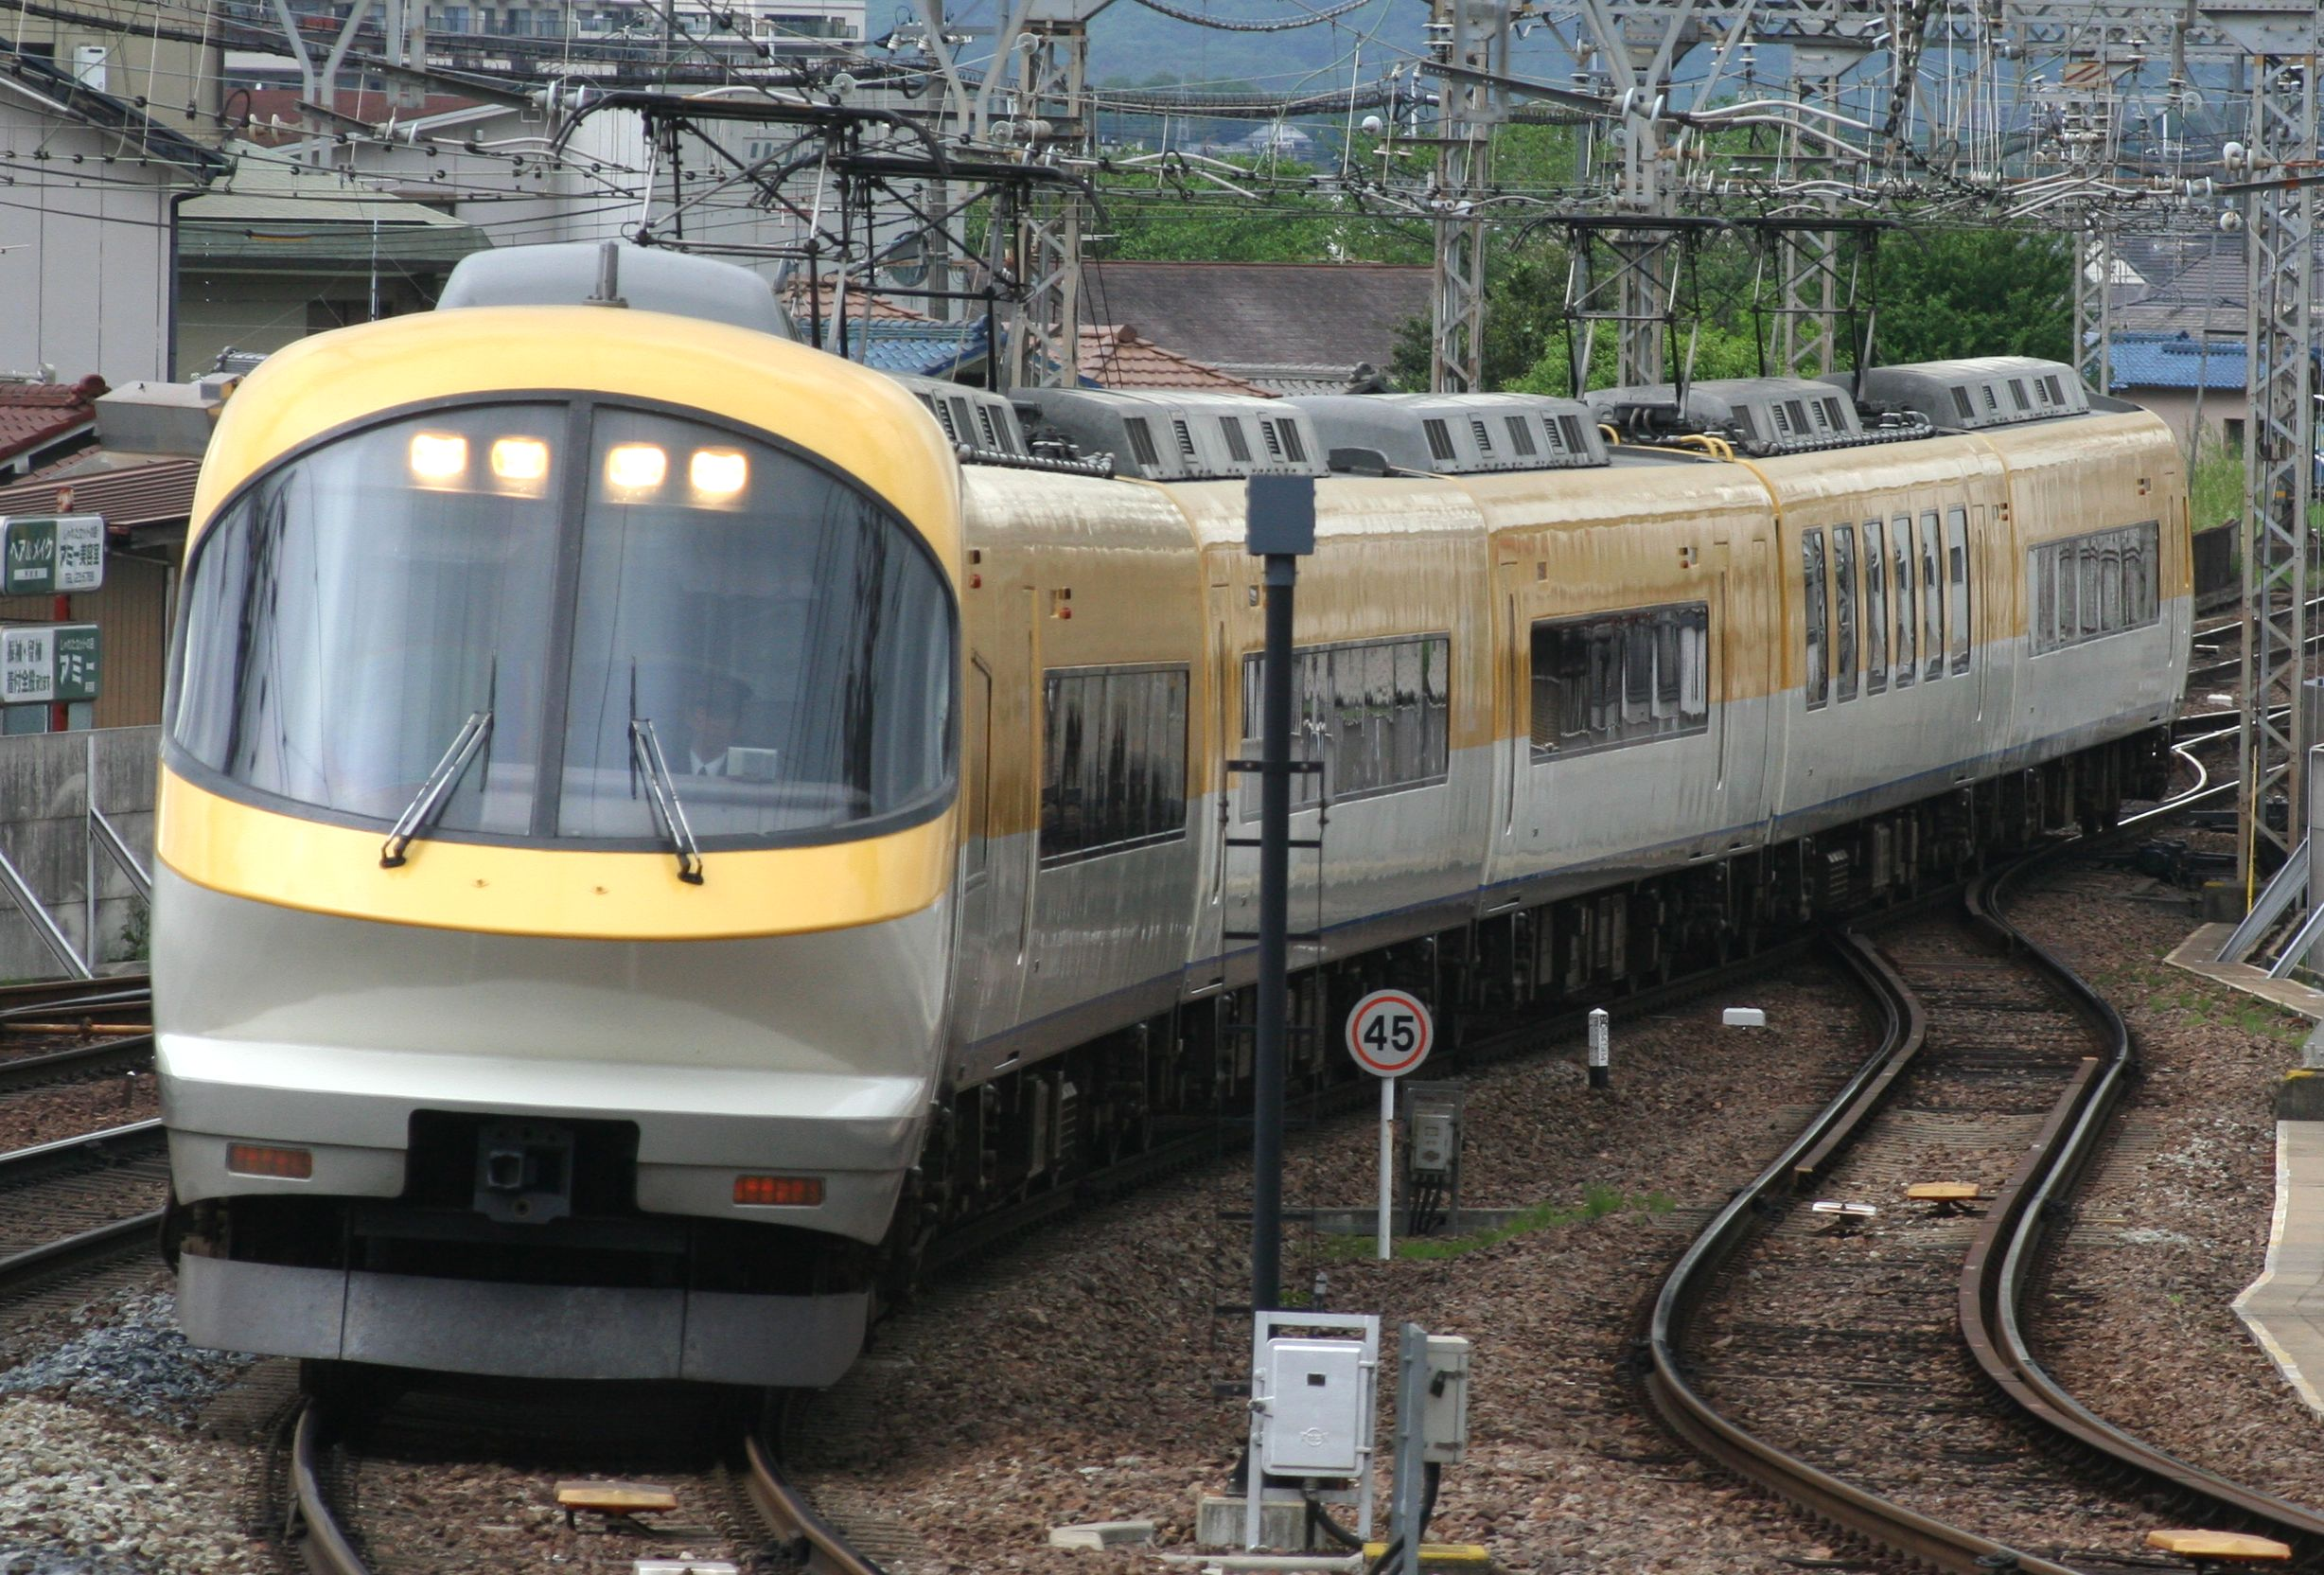 https://upload.wikimedia.org/wikipedia/commons/a/a5/Kintetsu-23000_20120504.jpg